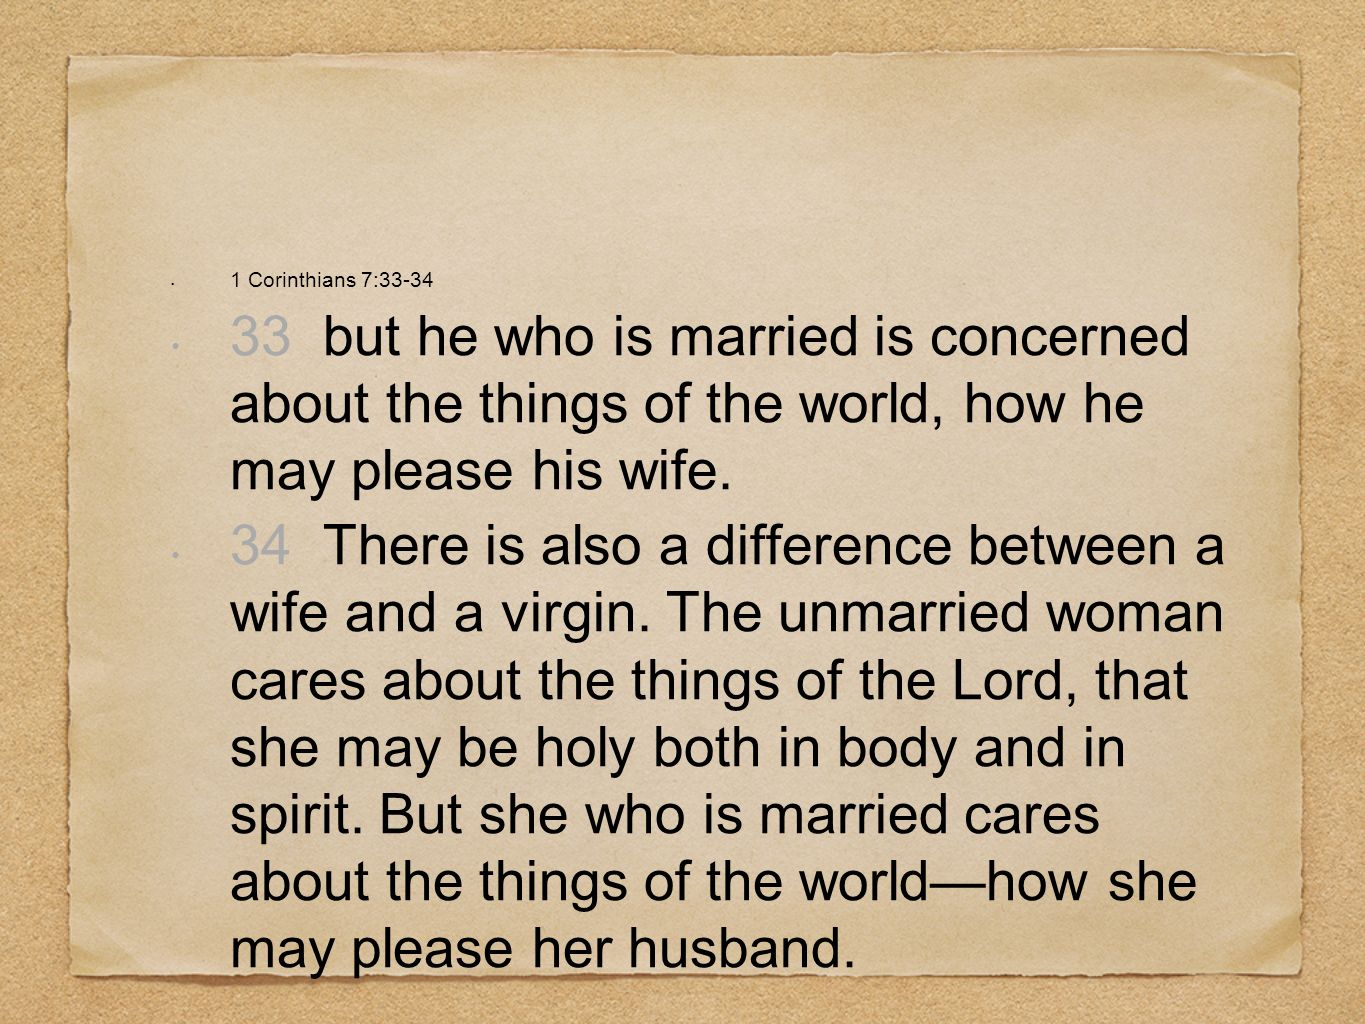 1 Corinthians 7:33-3433 but he who is married is concerned about the things of the world, how he may please his wife.